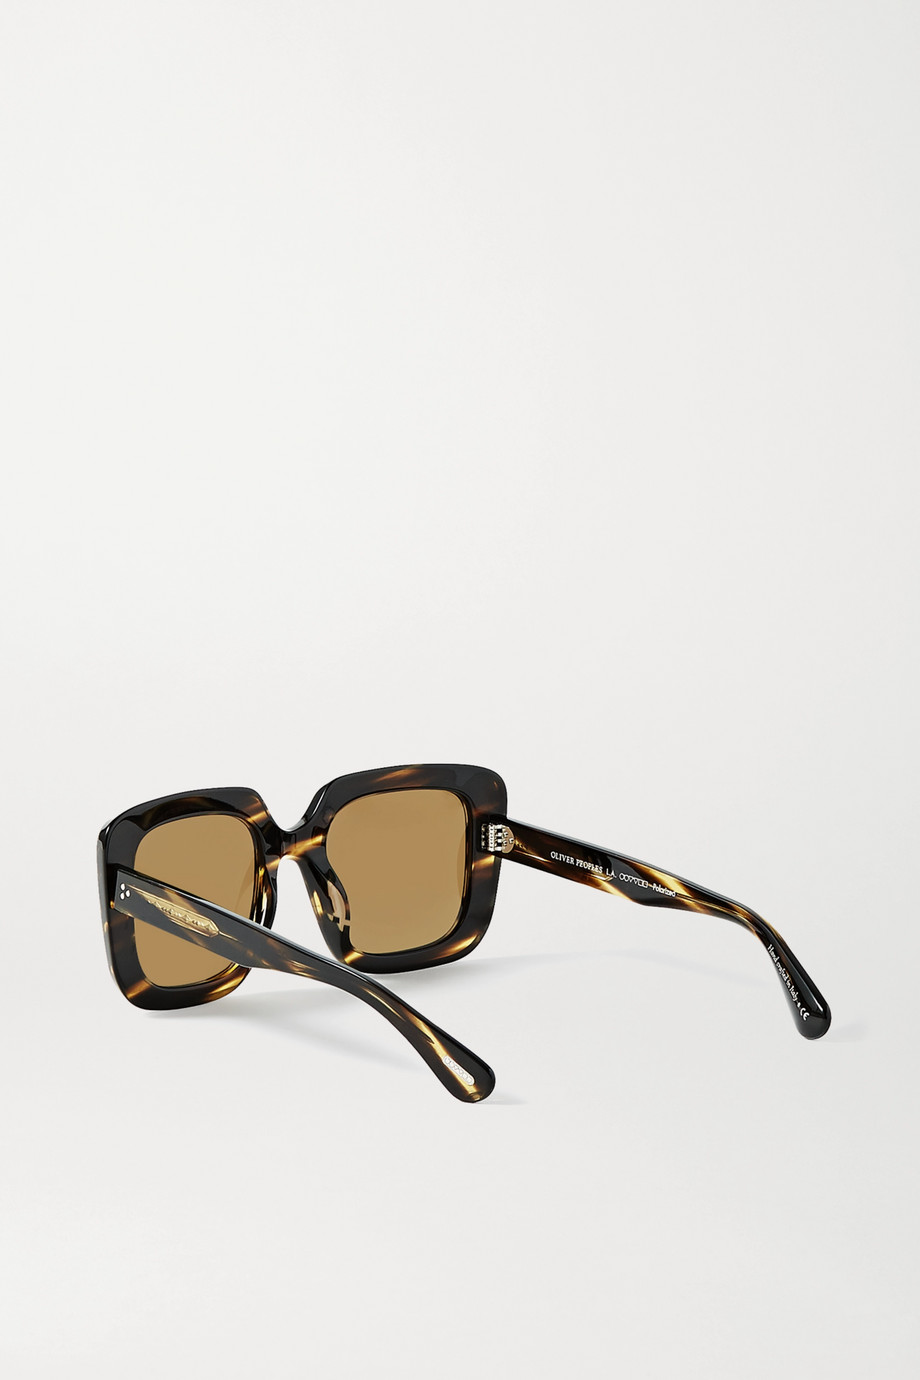 Oliver Peoples Franca oversized square-frame tortoiseshell acetate sunglasses